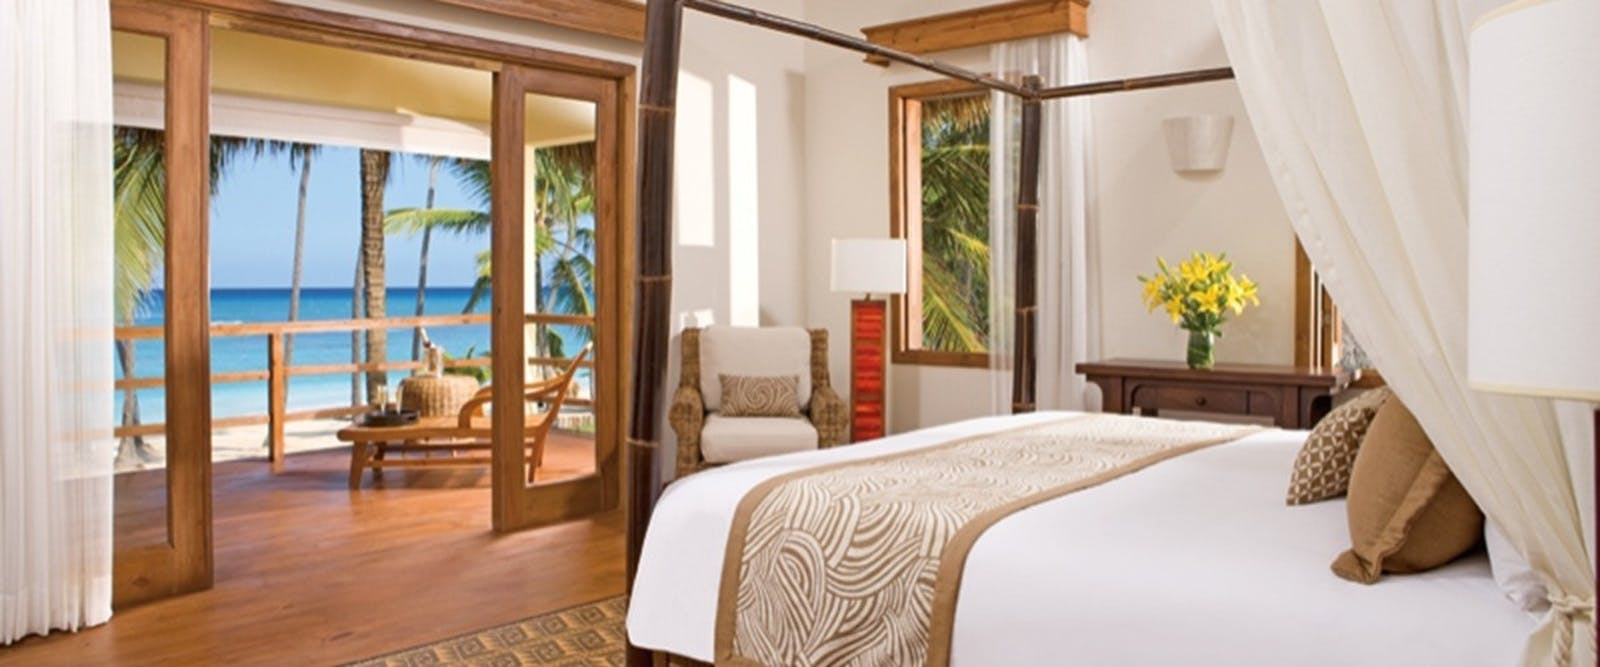 Junior Suite Deluxe Ocean Front at Zoetry Agua Punta Cana, Dominican Republic